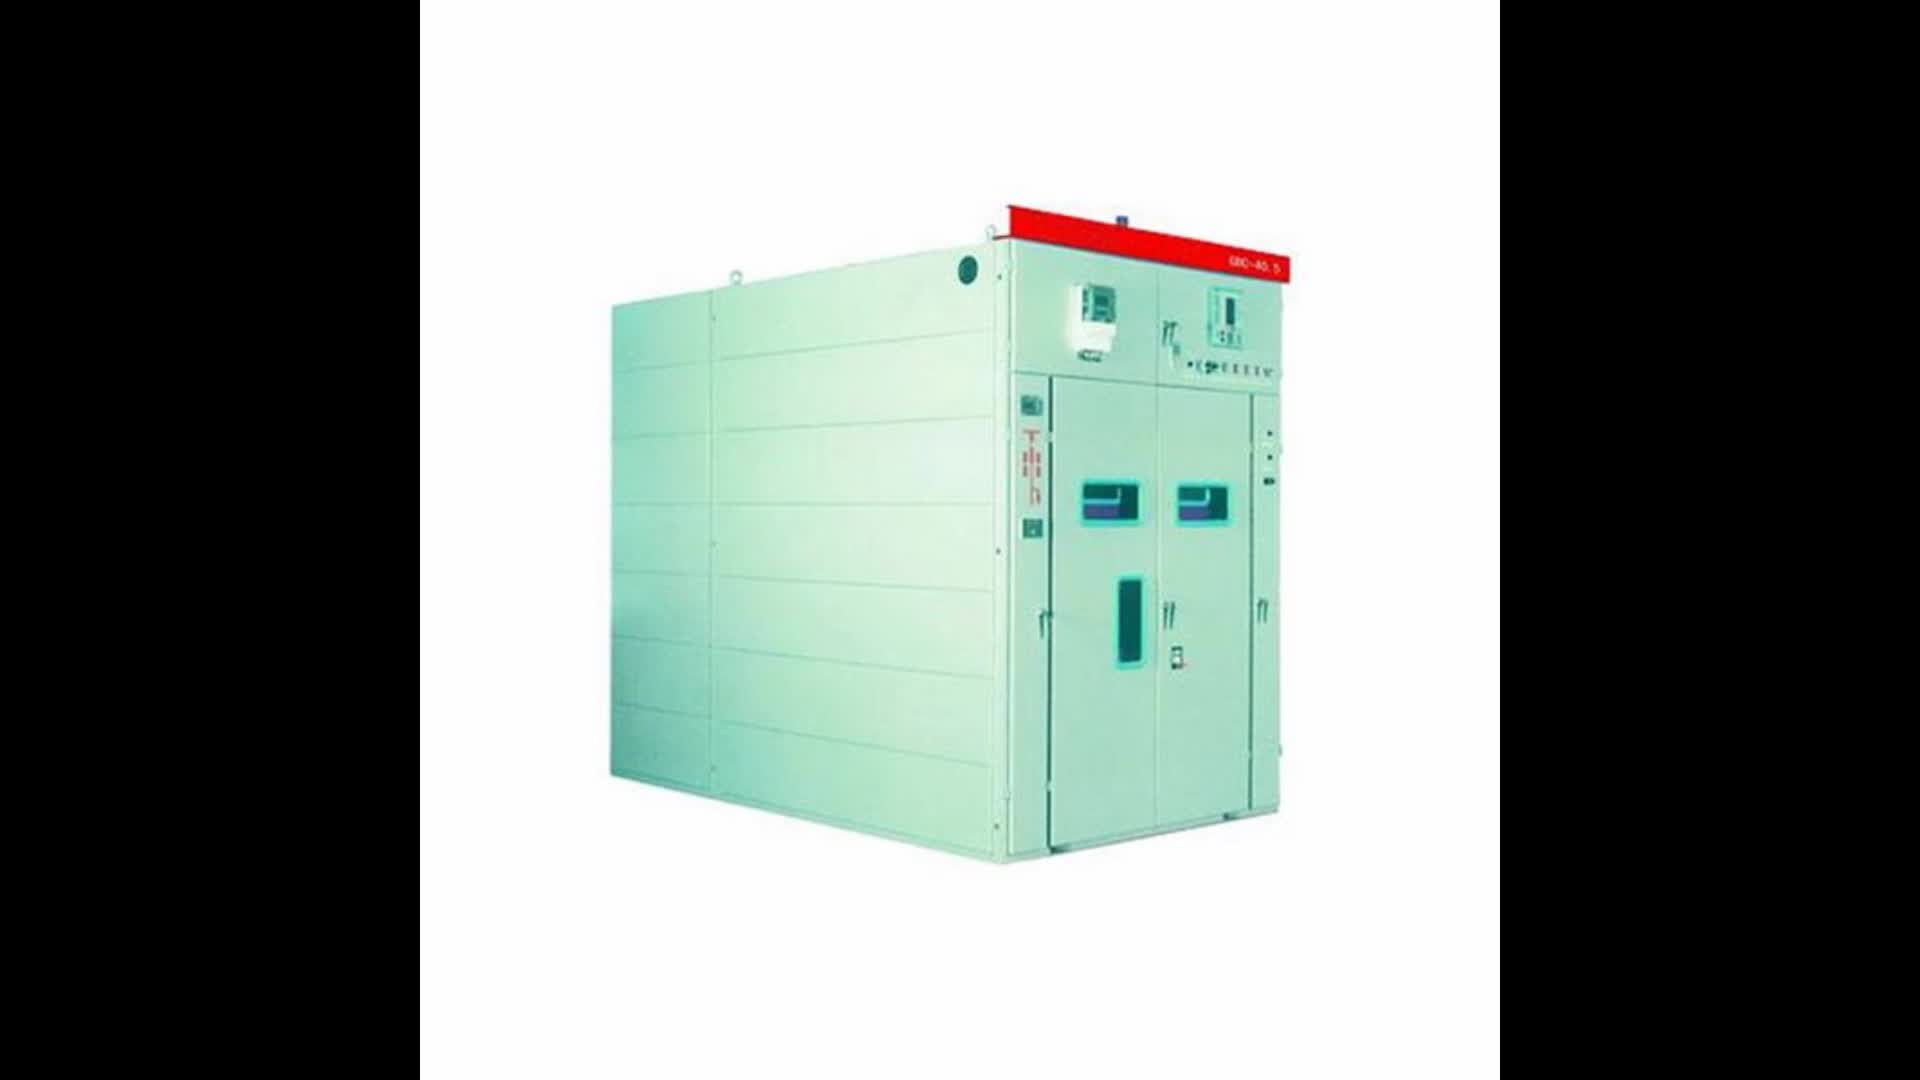 SW22 GZS1 Drawer Type Switch high voltage cabinet with panel board